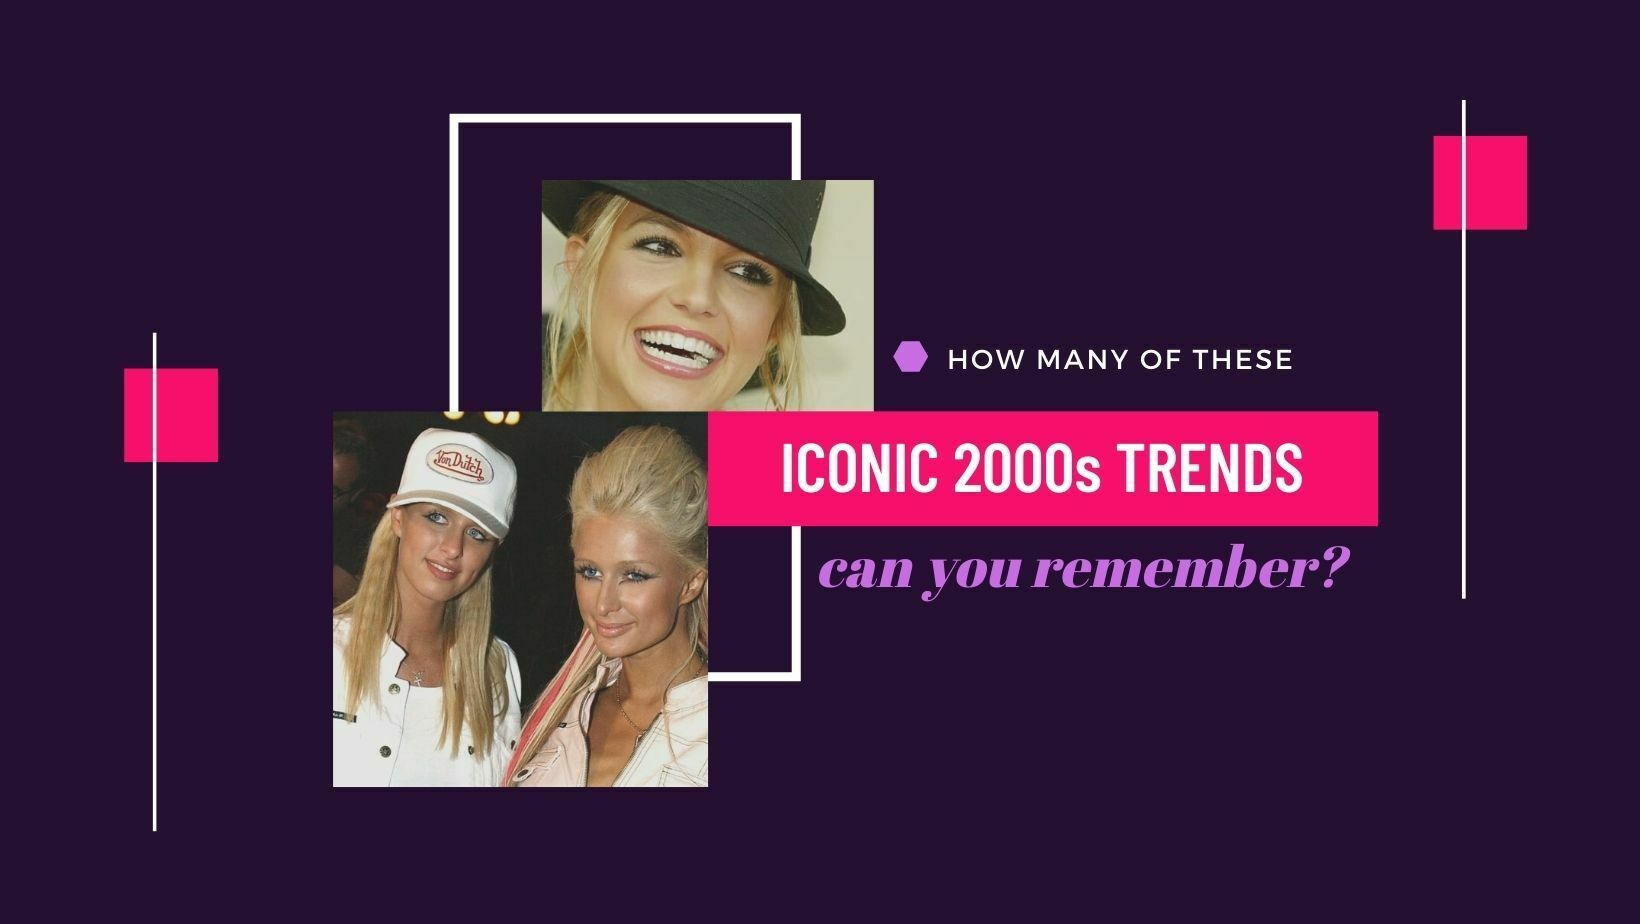 Iconic fashion trends of the 200s